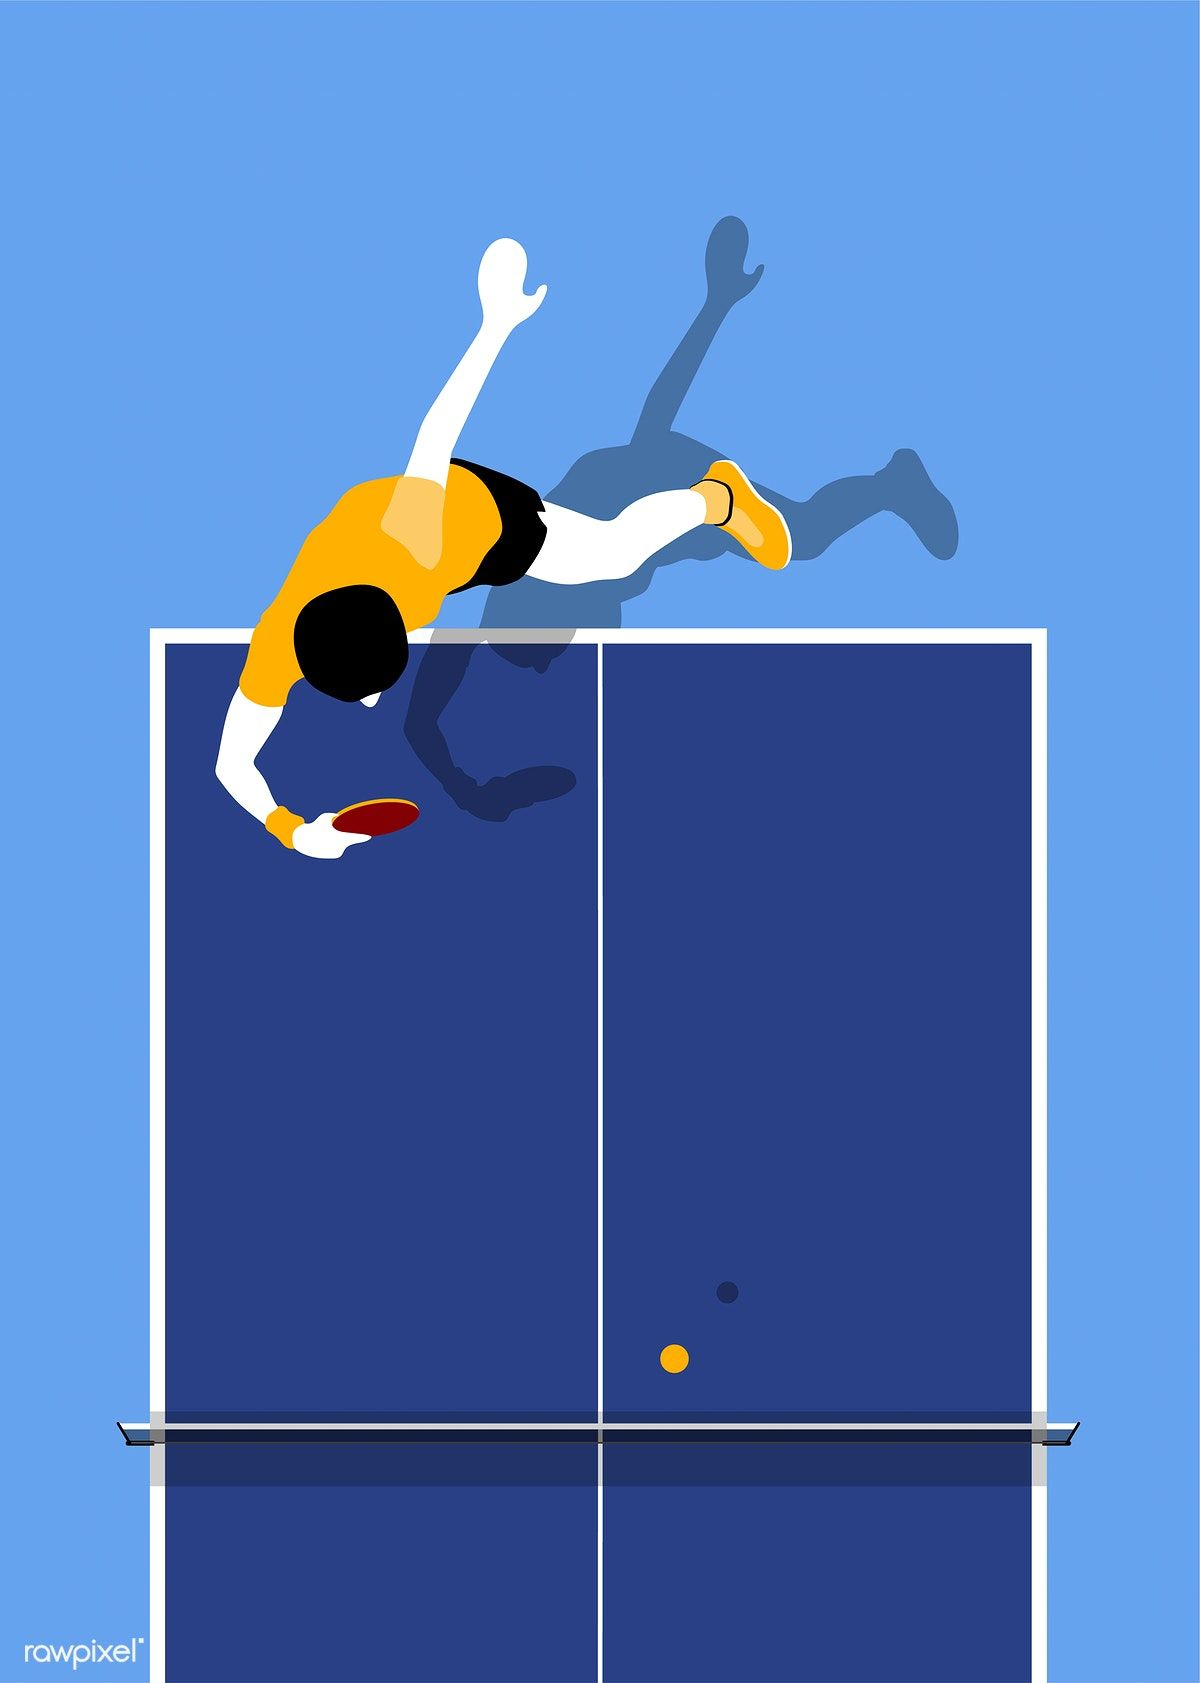 Aerial View Of A Table Tennis Table Free Image By Rawpixel Com Table Tennis Tennis Sport Illustration